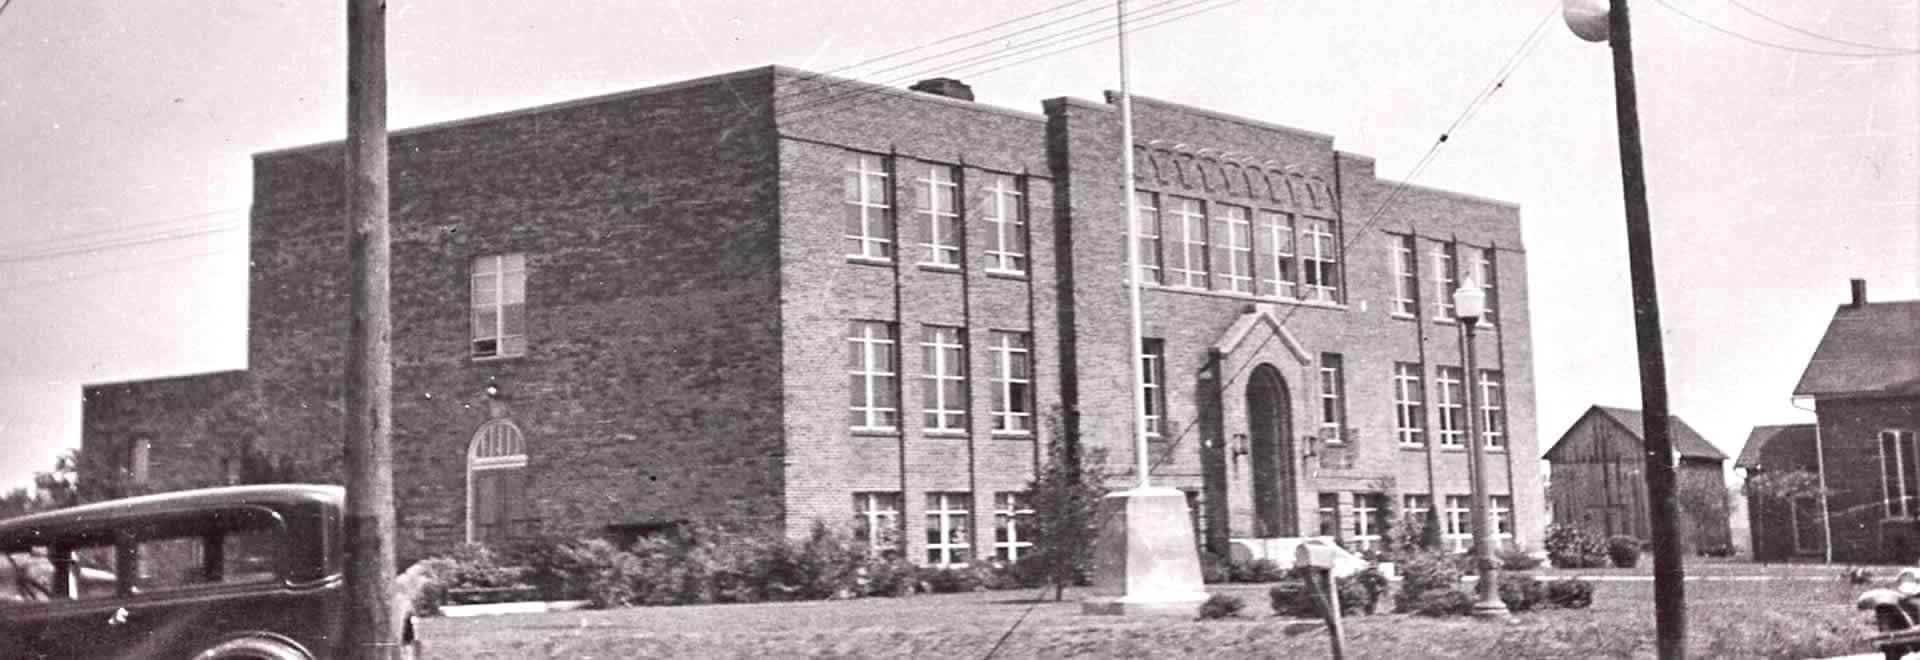 The New Bremen High School built in 1930